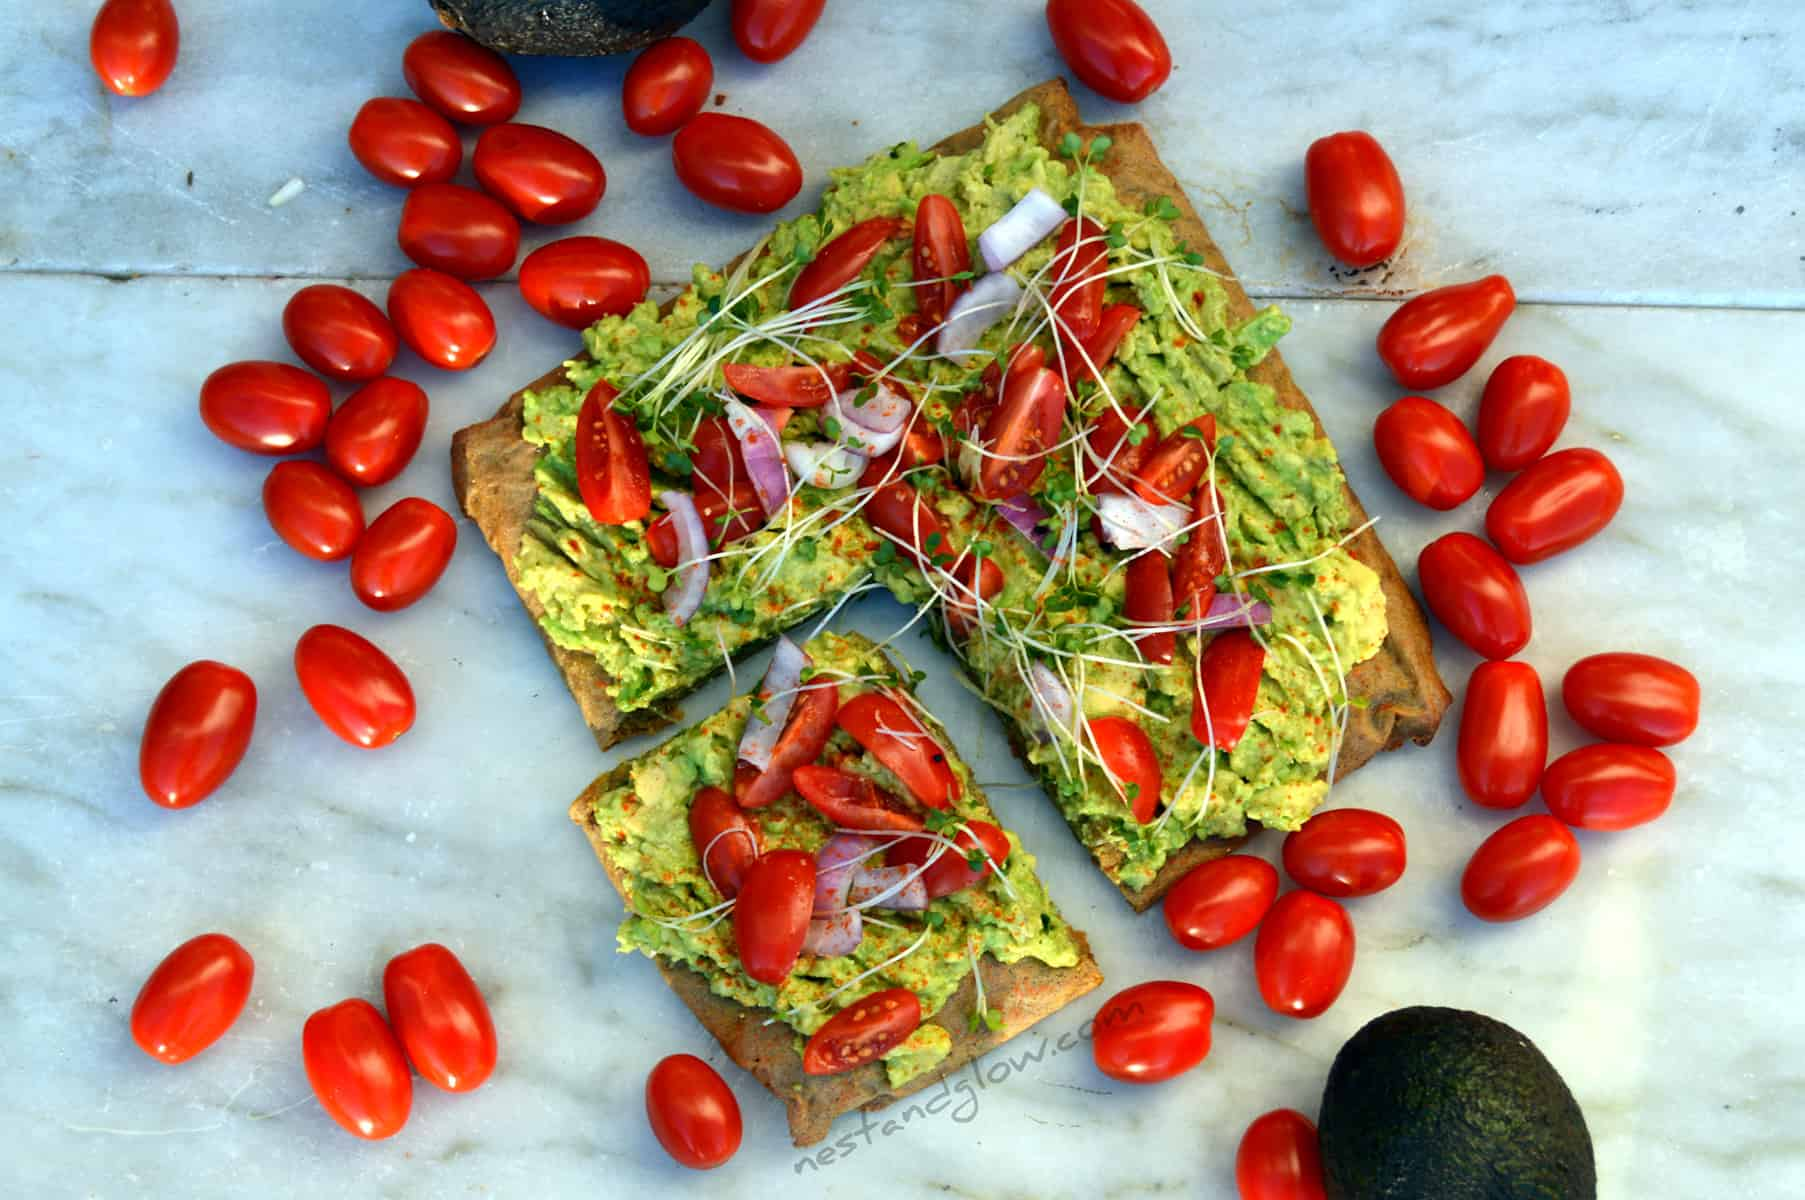 Avocado Toast on Quinoa Bread